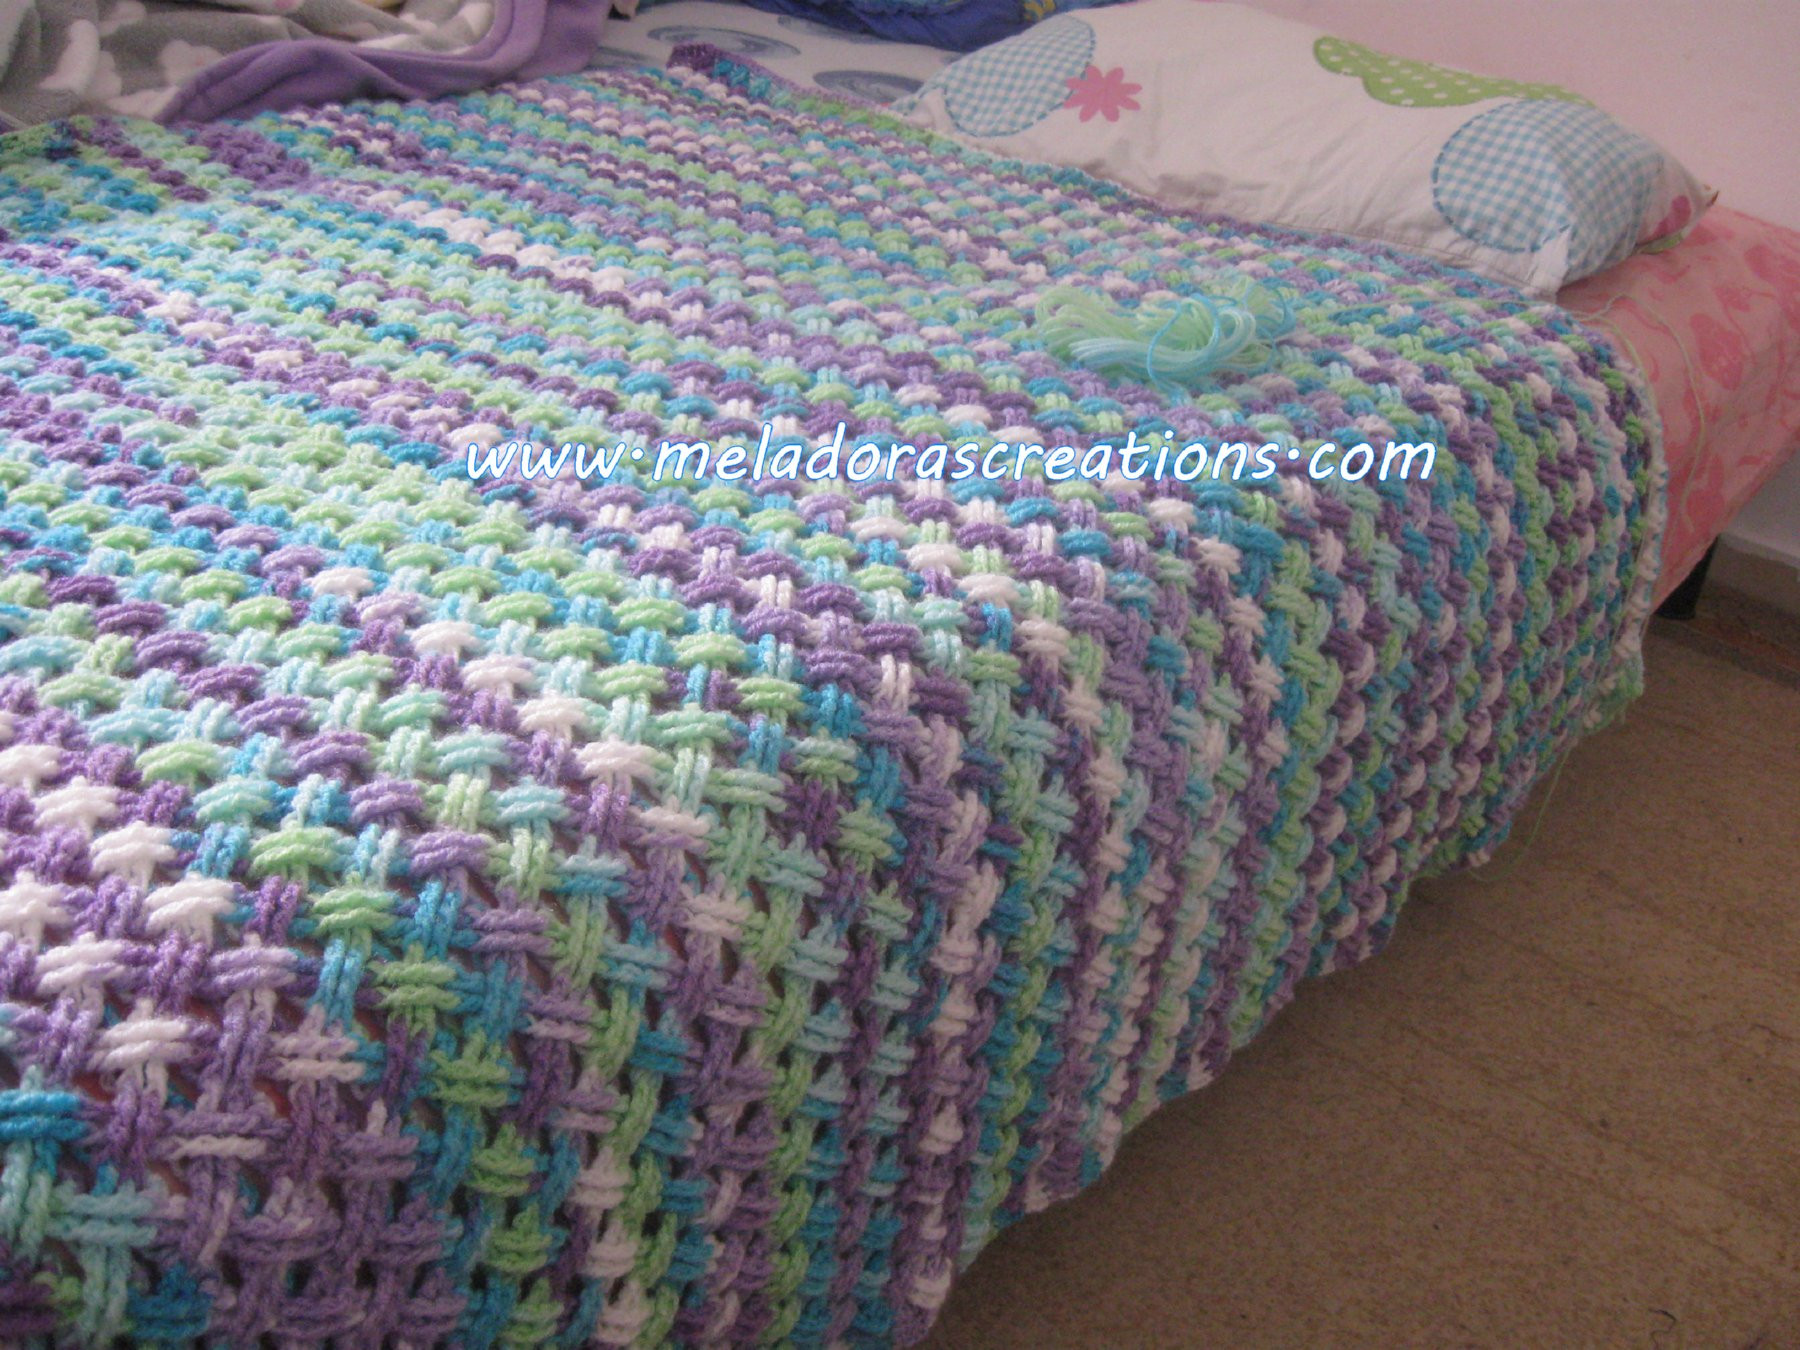 Crochet Afghan Stitch Awesome Meladora S Creations – Interweave Cable Celtic Weave Of Attractive 40 Ideas Crochet Afghan Stitch